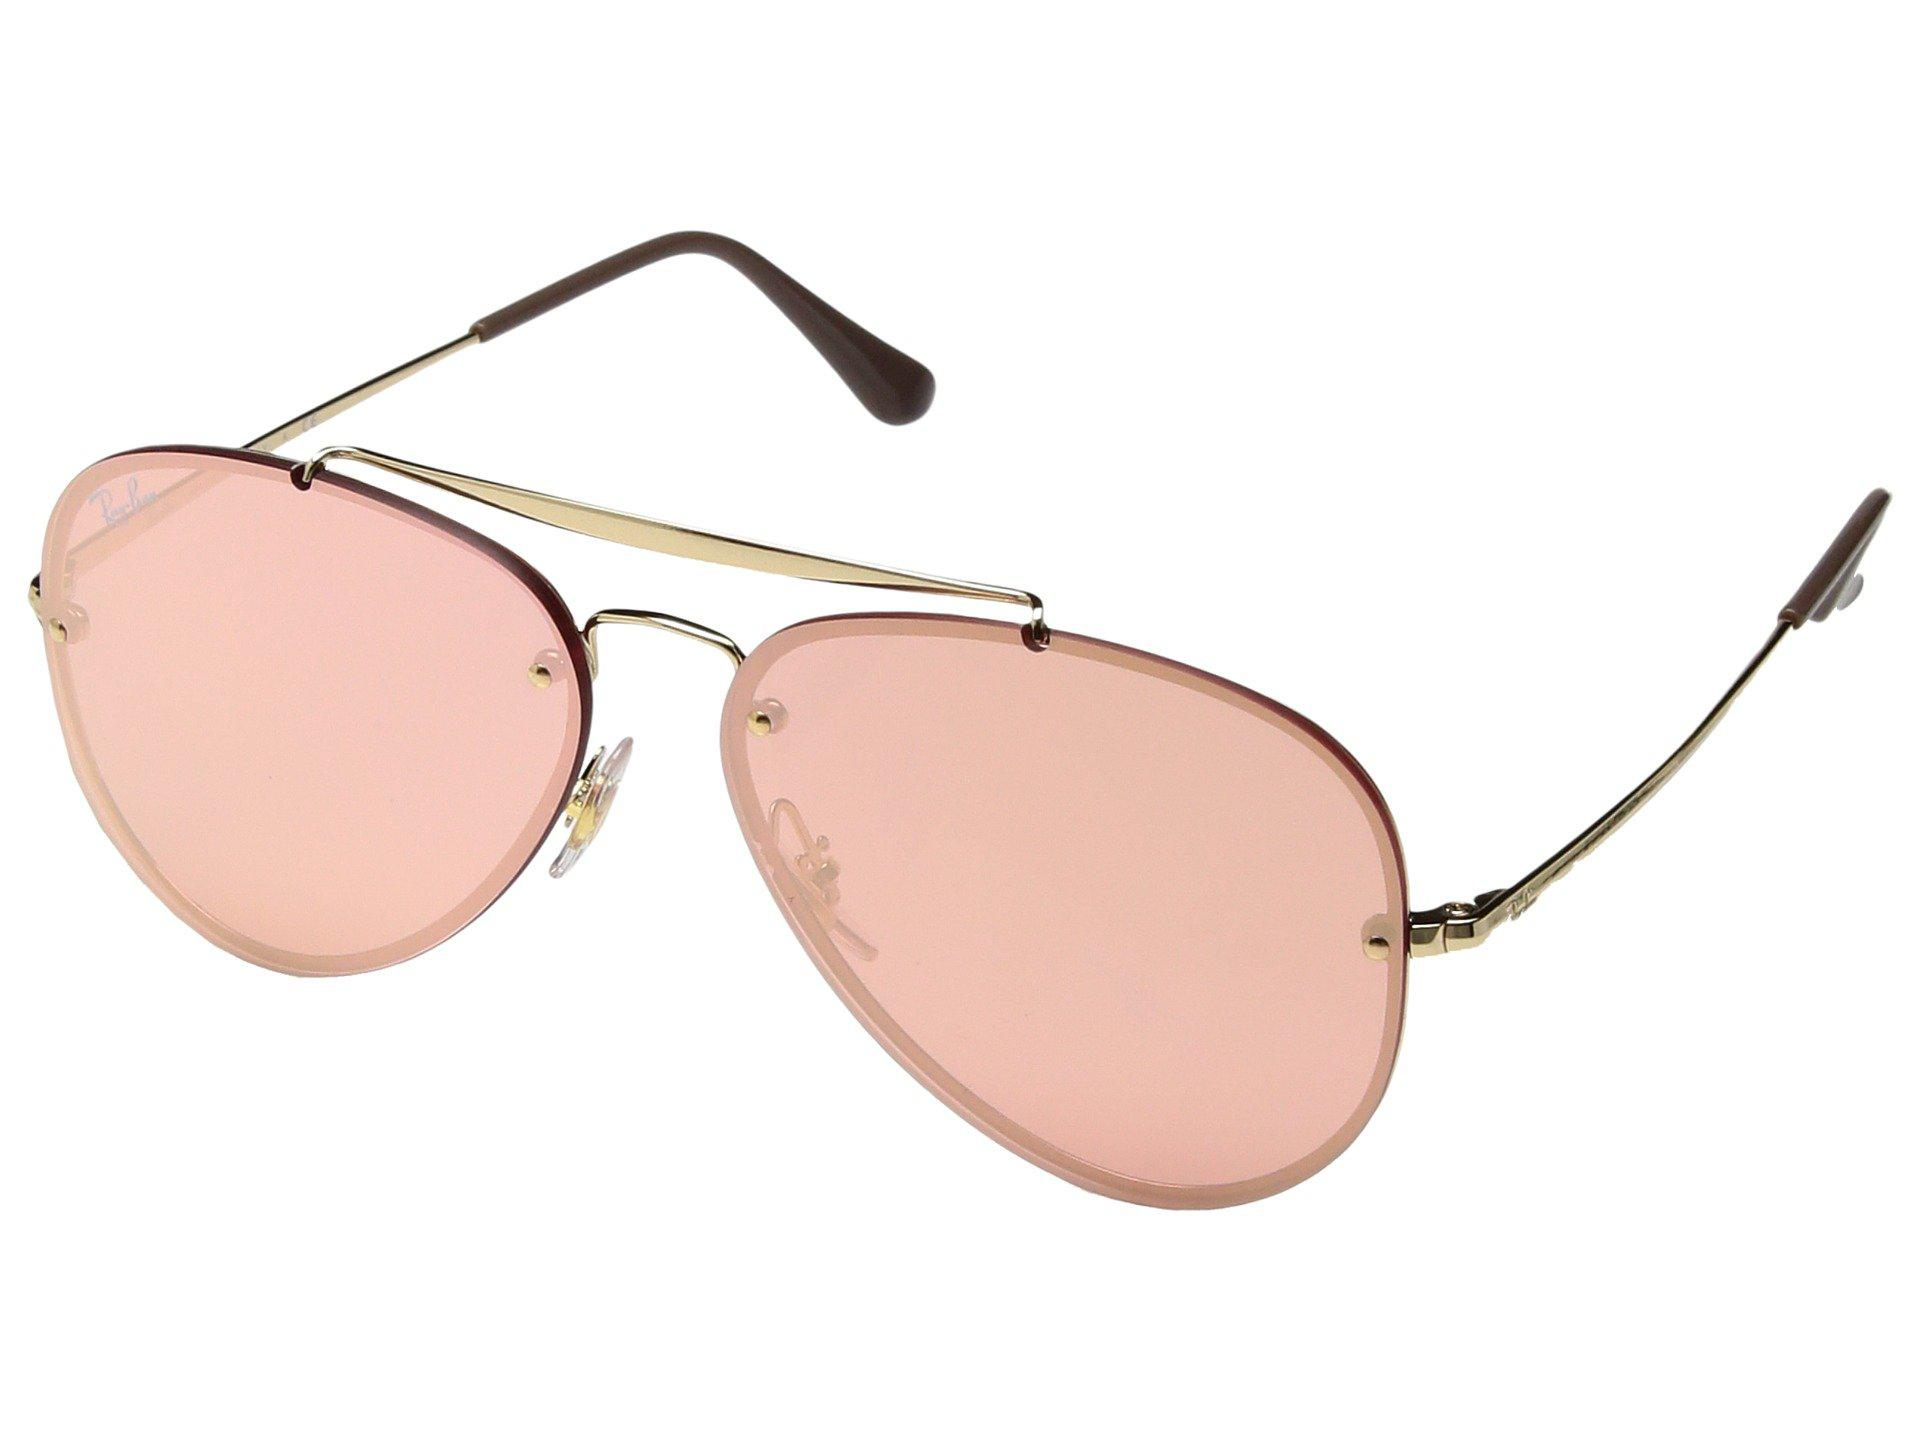 912f24afeae90 Lyst - Ray-Ban Blaze Aviator Sunglasses In Gold Pink Mirror Rb3584n ...